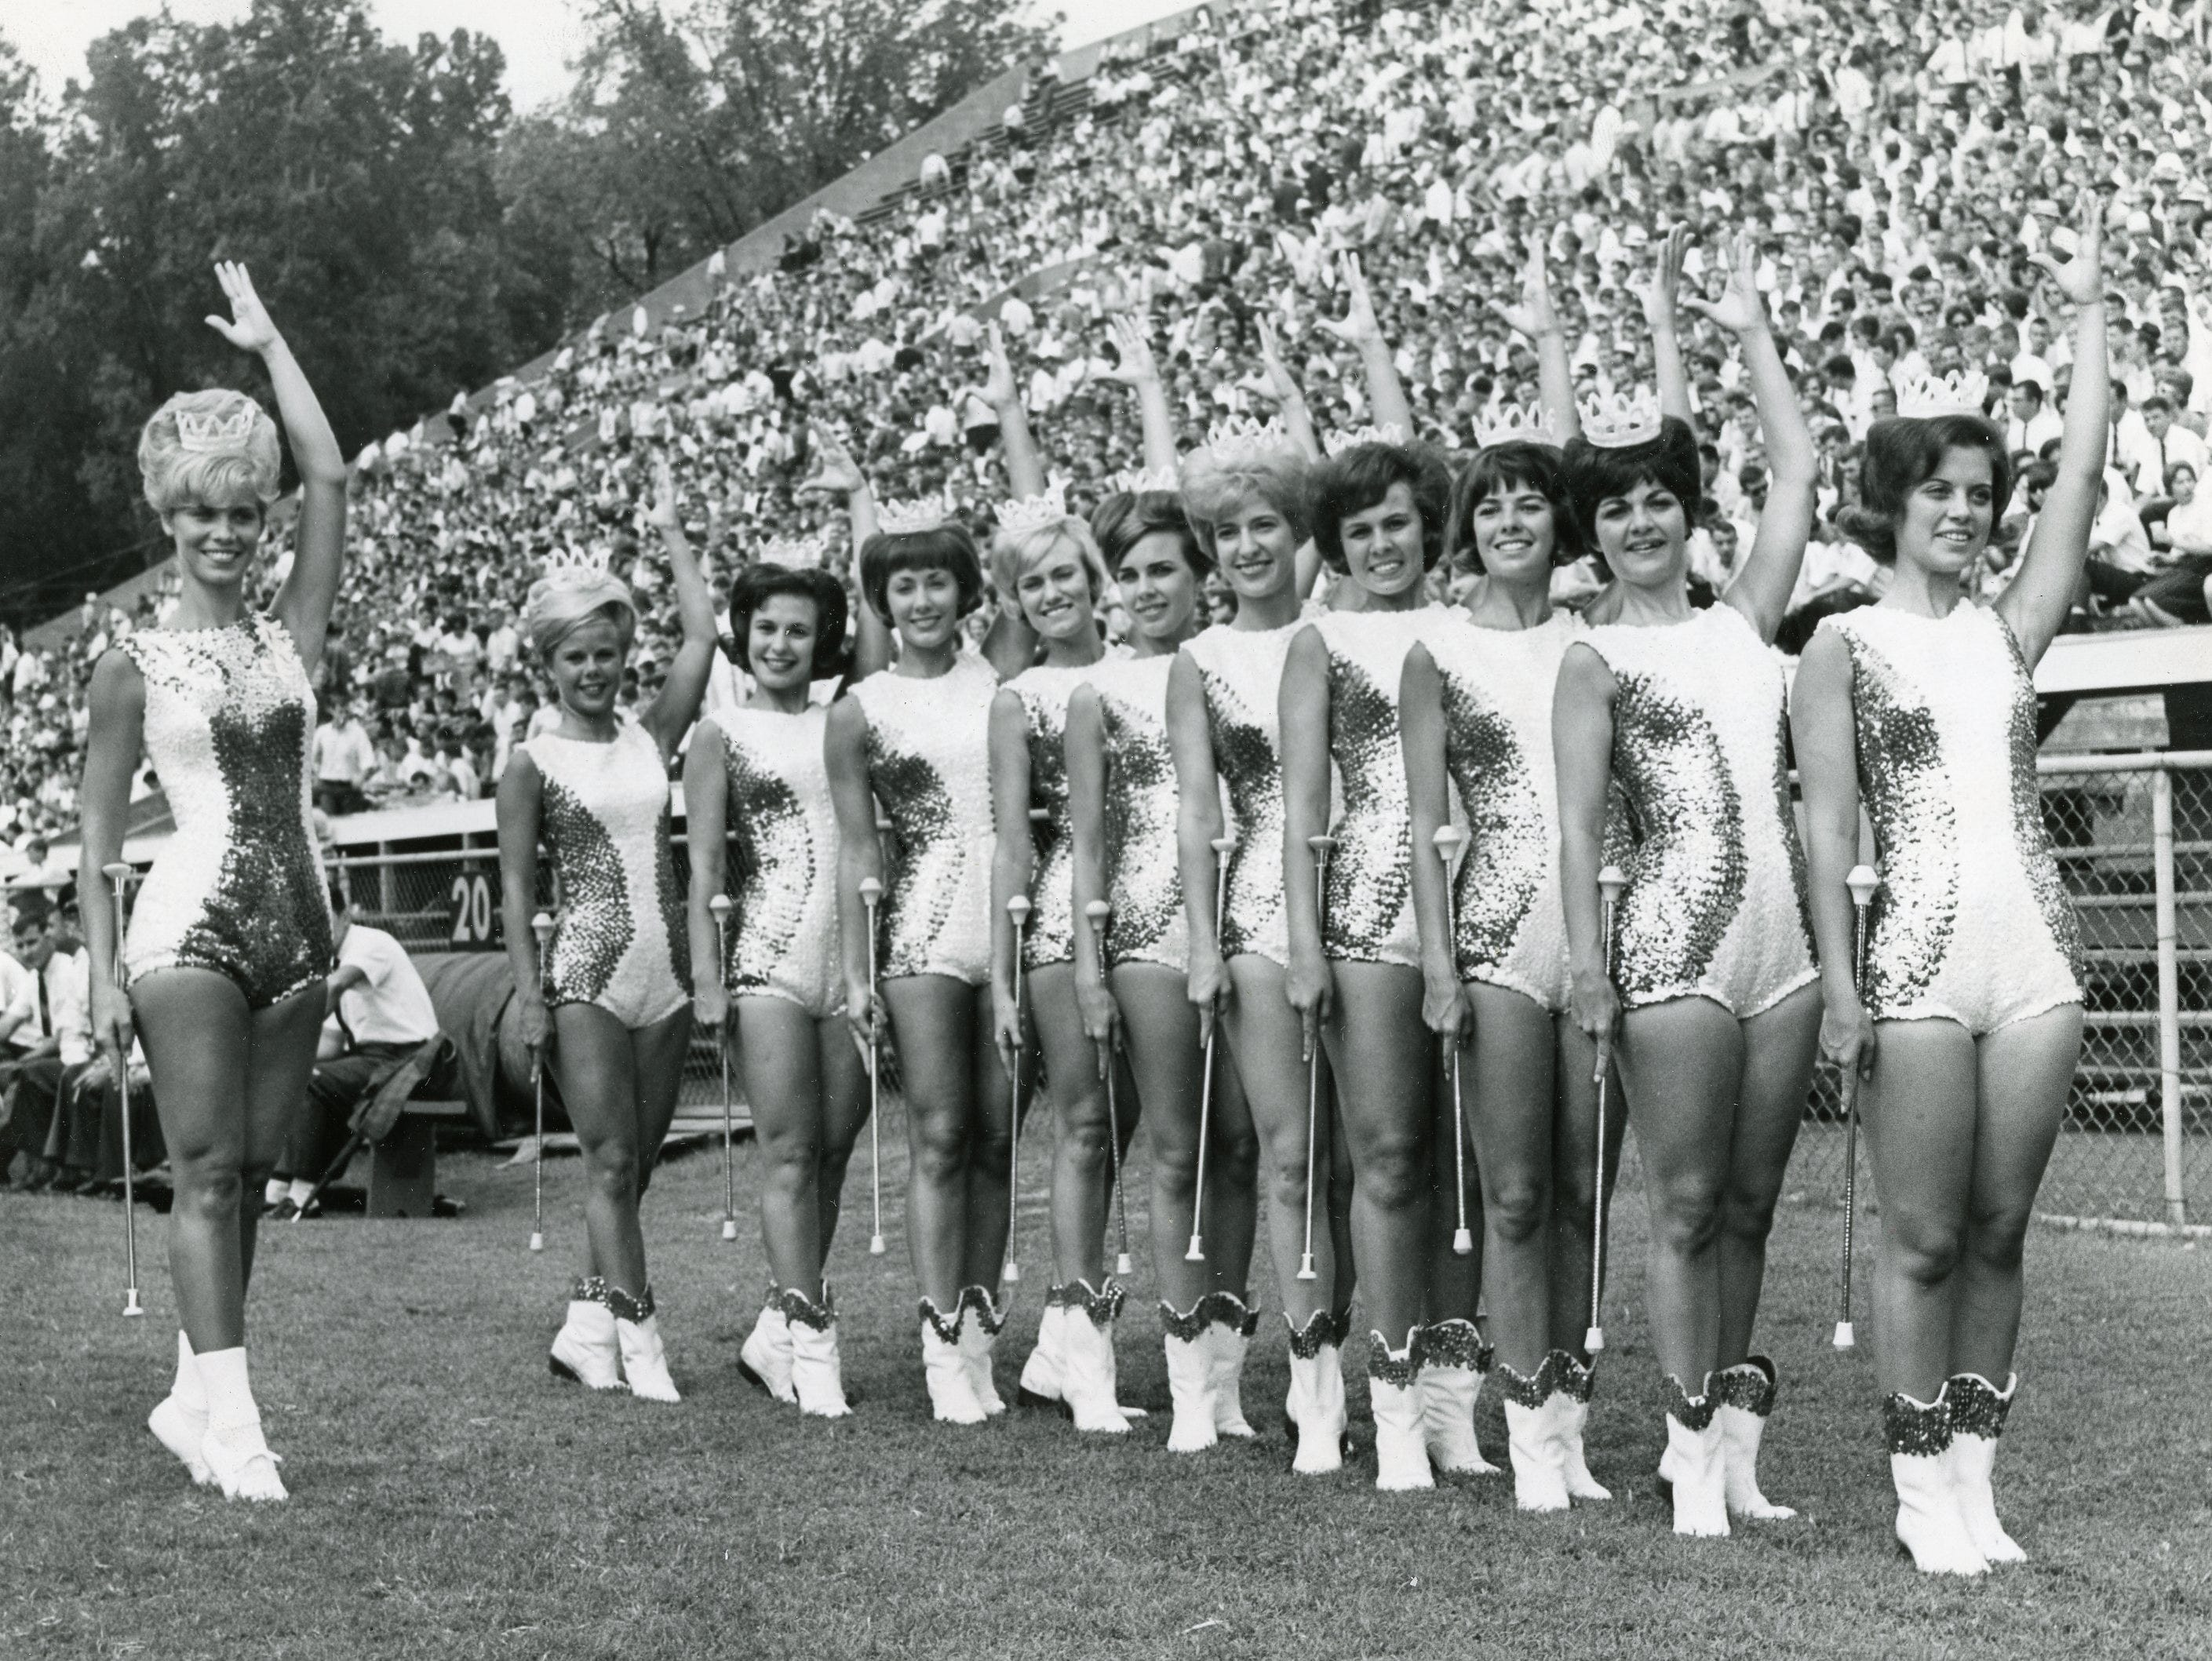 UT majorettes on the field before the UT/Chattanooga game, September, 1964. Pictured are (from left): head majorette Judy Barton, Mary Nicholon, Elaine White, Valerie Foster, Melinda Hewgley, Patti Stuart, Brenda Flowers, Deede Wiggins, Betty Carlson, Betty Sue Little and Judy Phillilps.